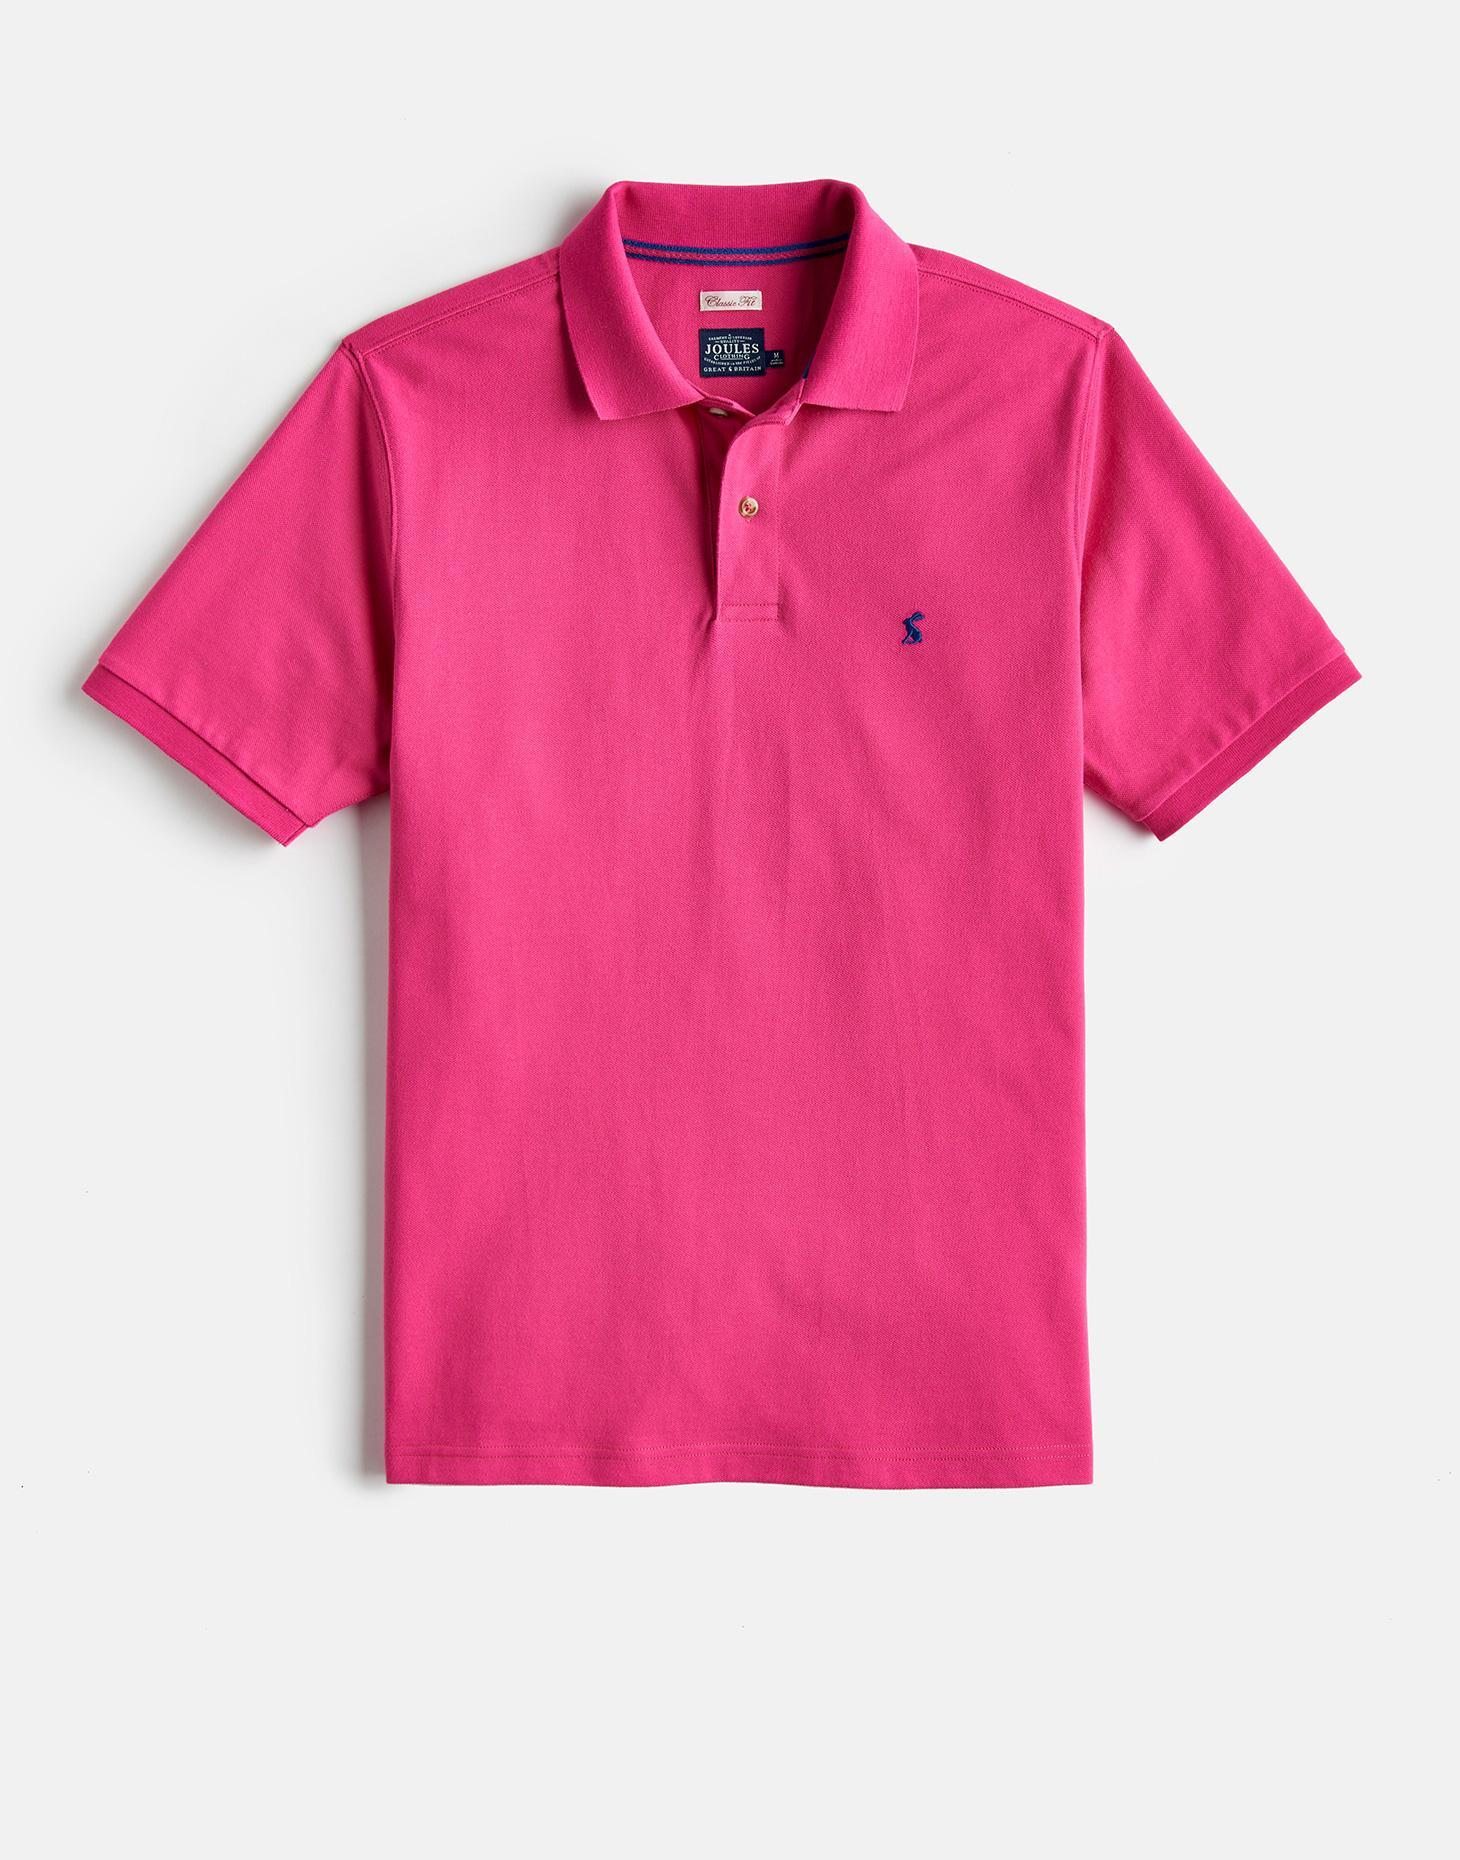 Joules Summer Pink WOODY CLASSIC Fit Polo Shirt